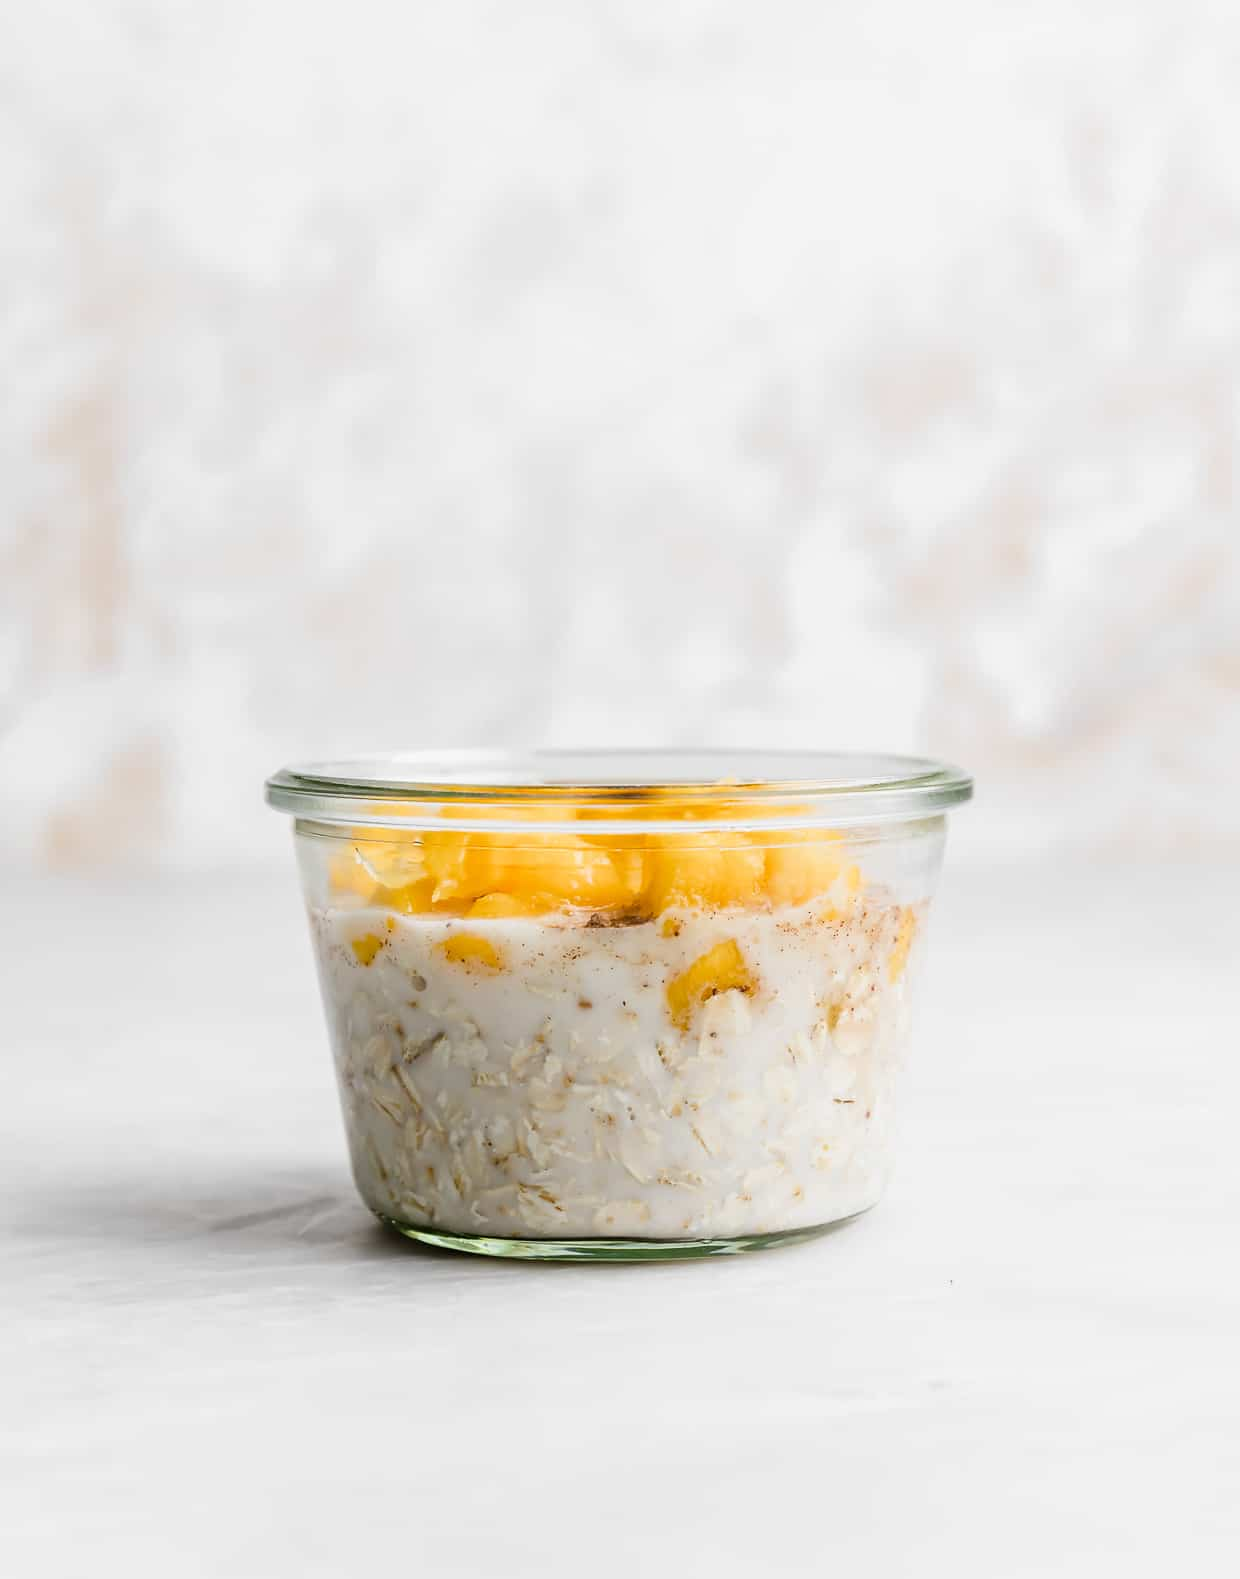 A glass jar with milk and oats on the bottom and diced mangos overtop.